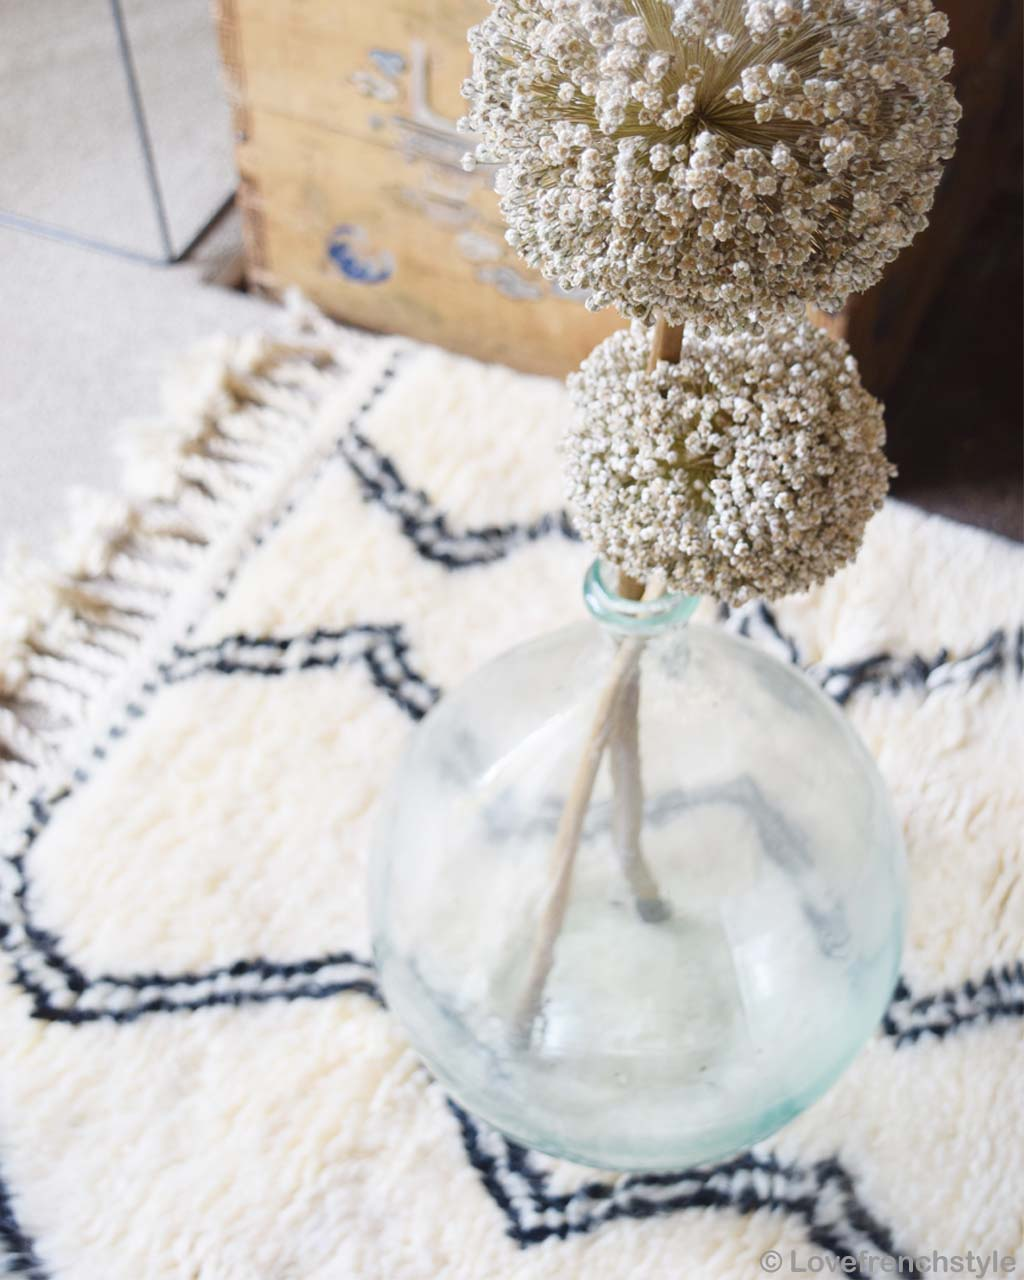 made with hand transparent vase with white flowers fresh childrens rugs